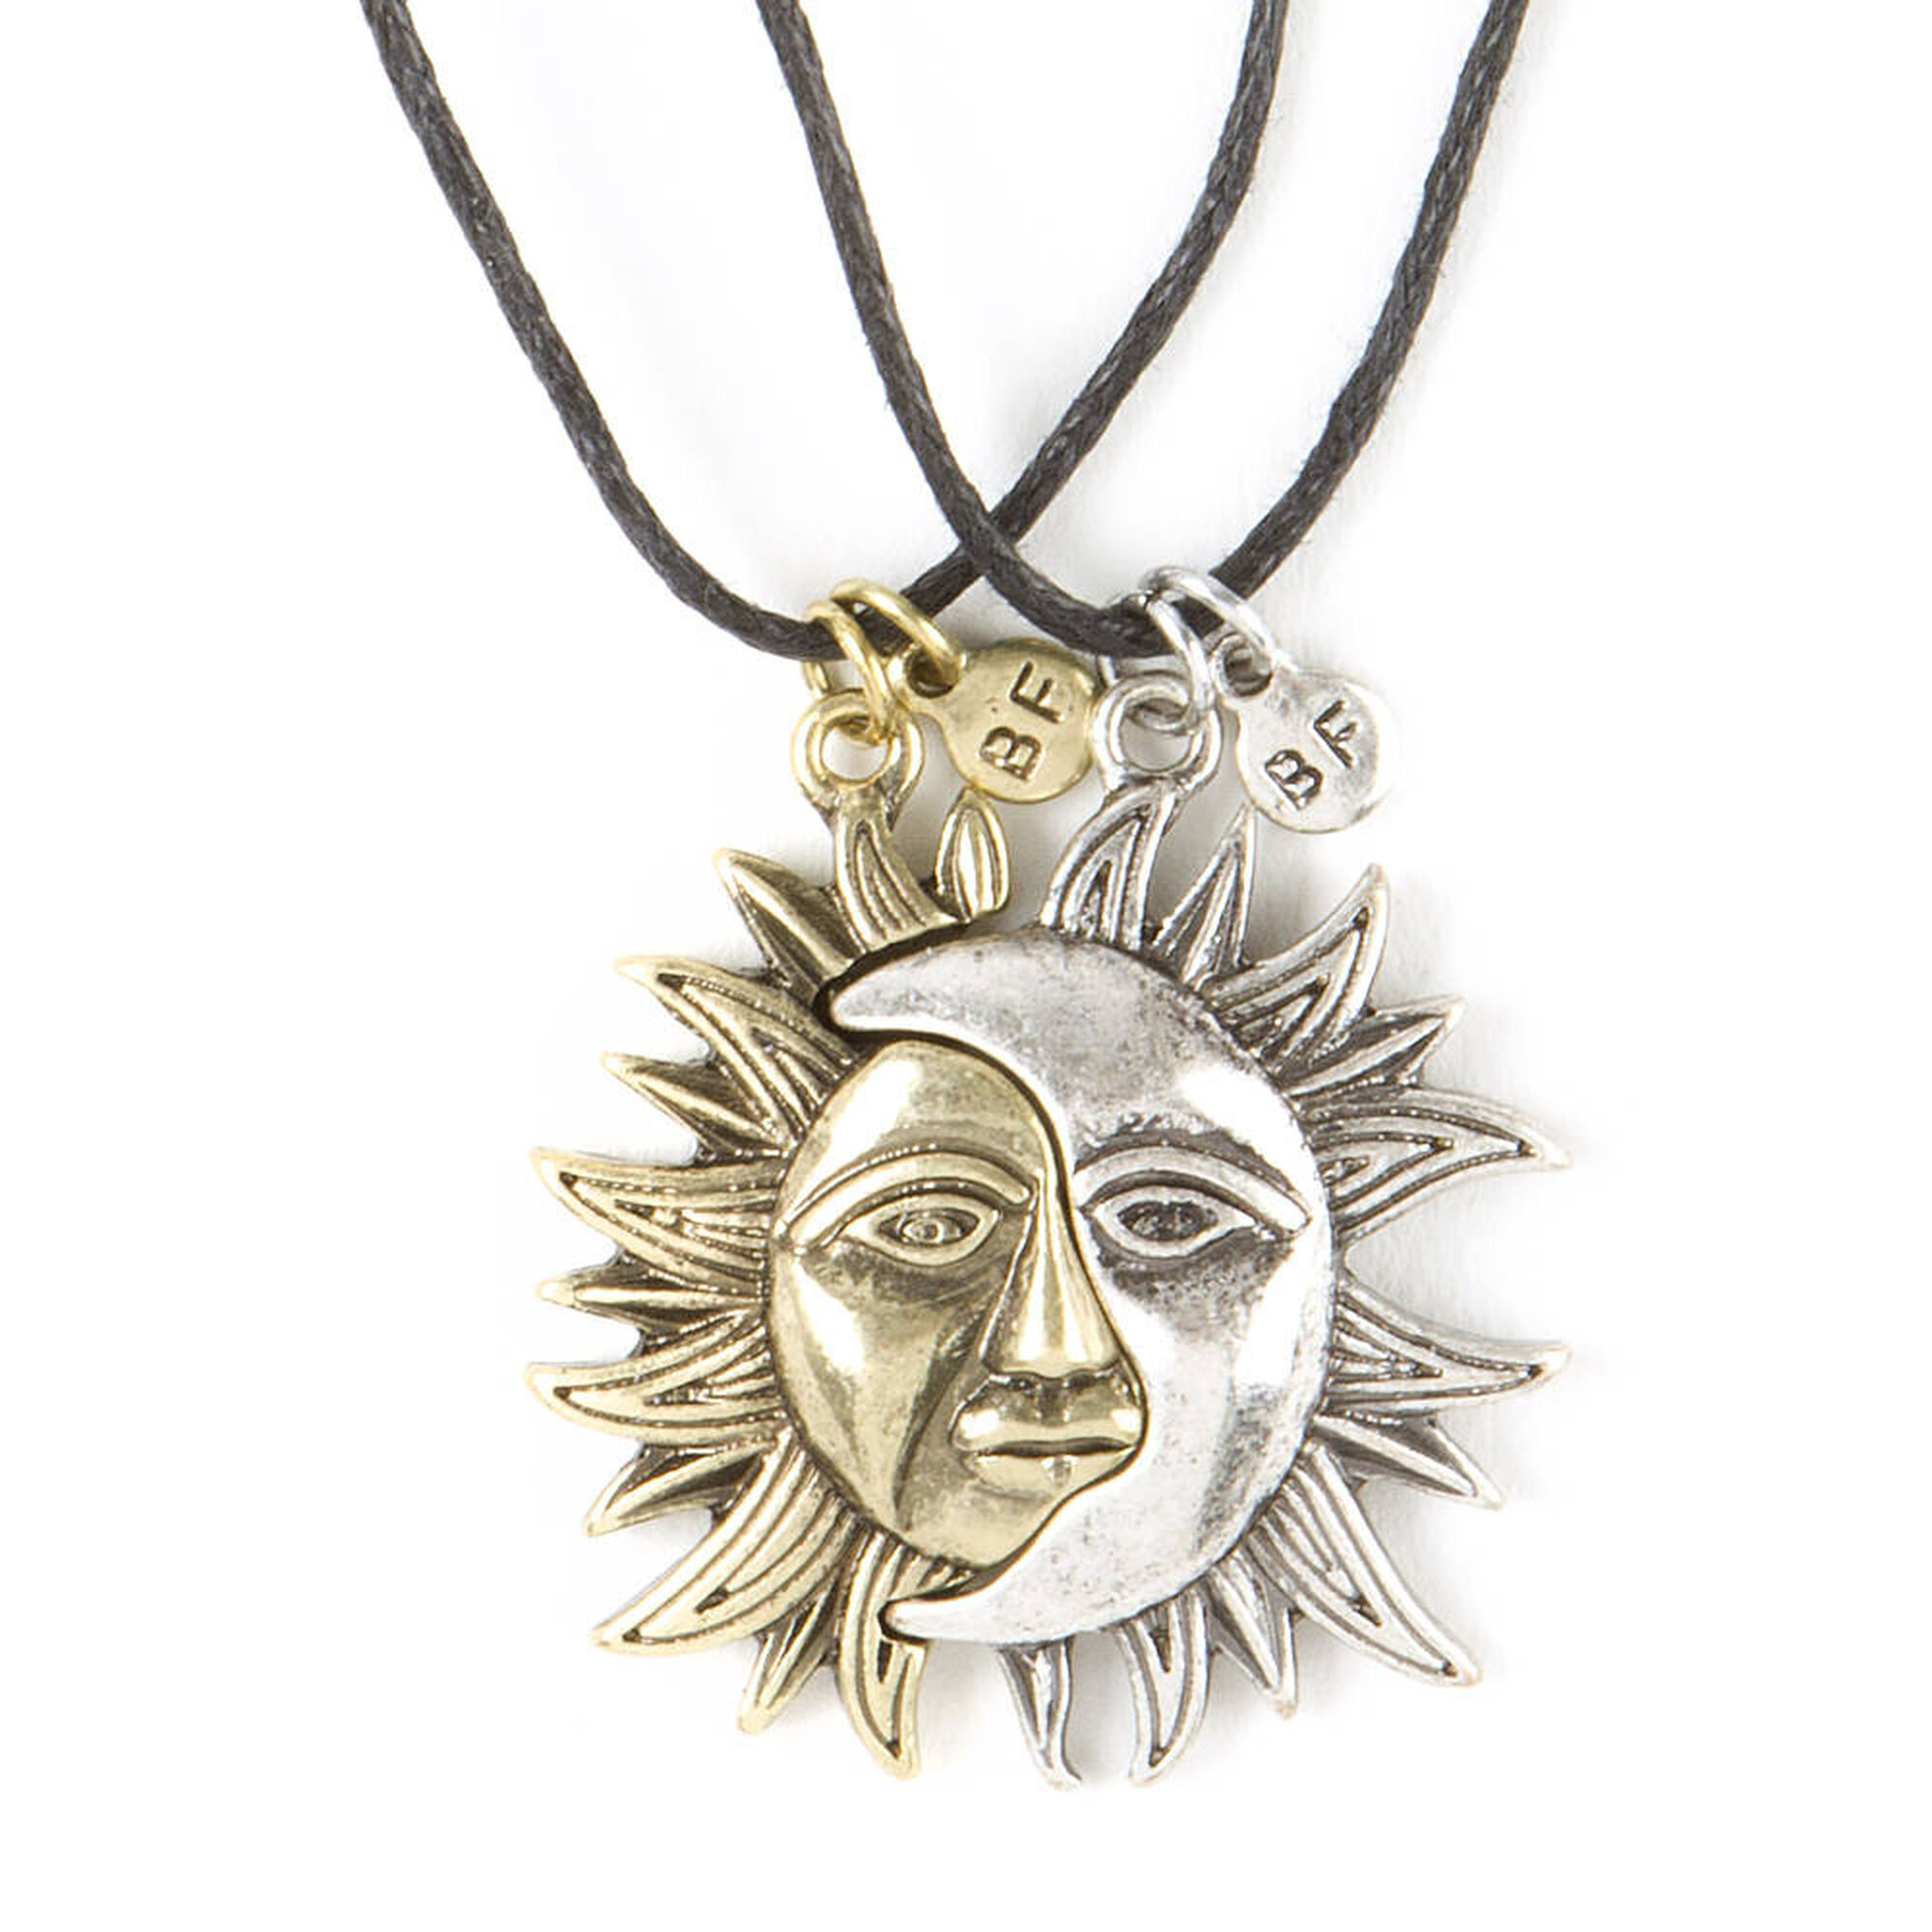 necklace eyes l sun view lucky larger image thebrianmcdermottband necklaces com gallery